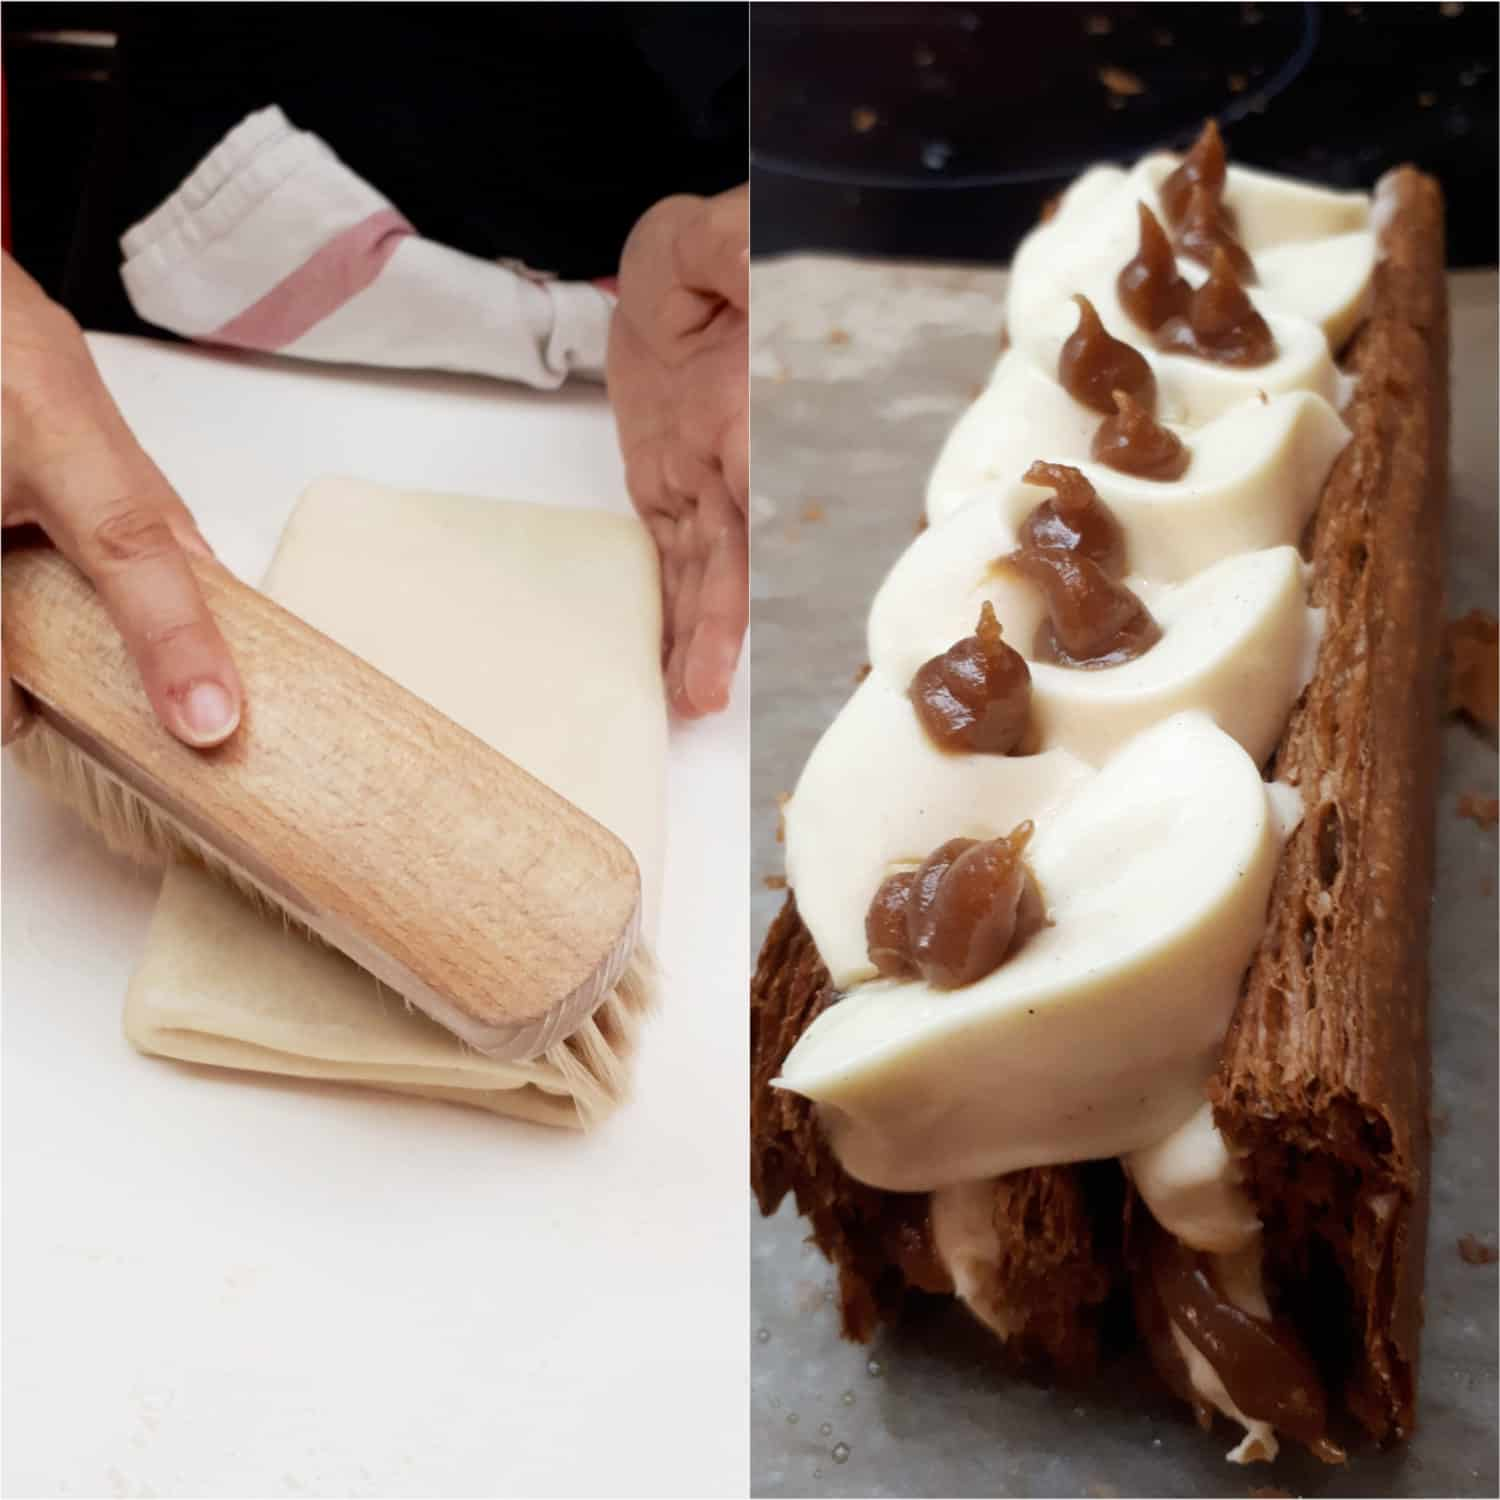 Pate-feuilletee-millefeuille-cours-patisserie-MyGatô-Lyon